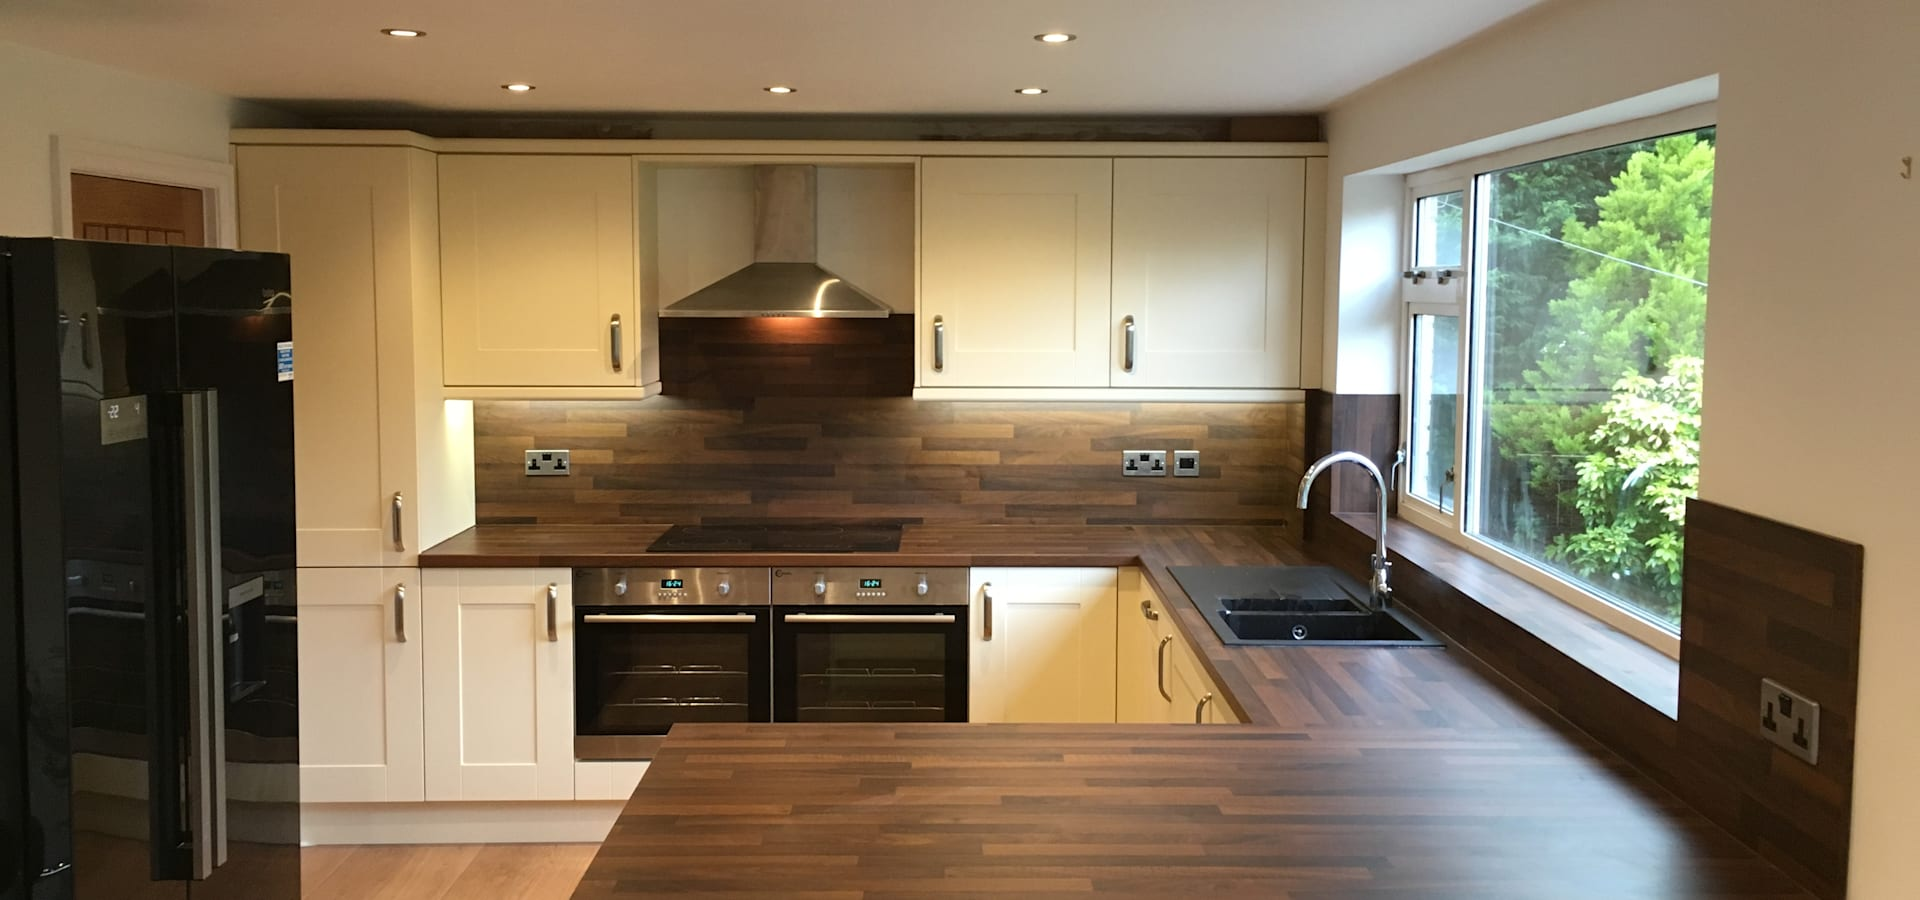 design 4 living uk kitchen manufacturers in north west homify